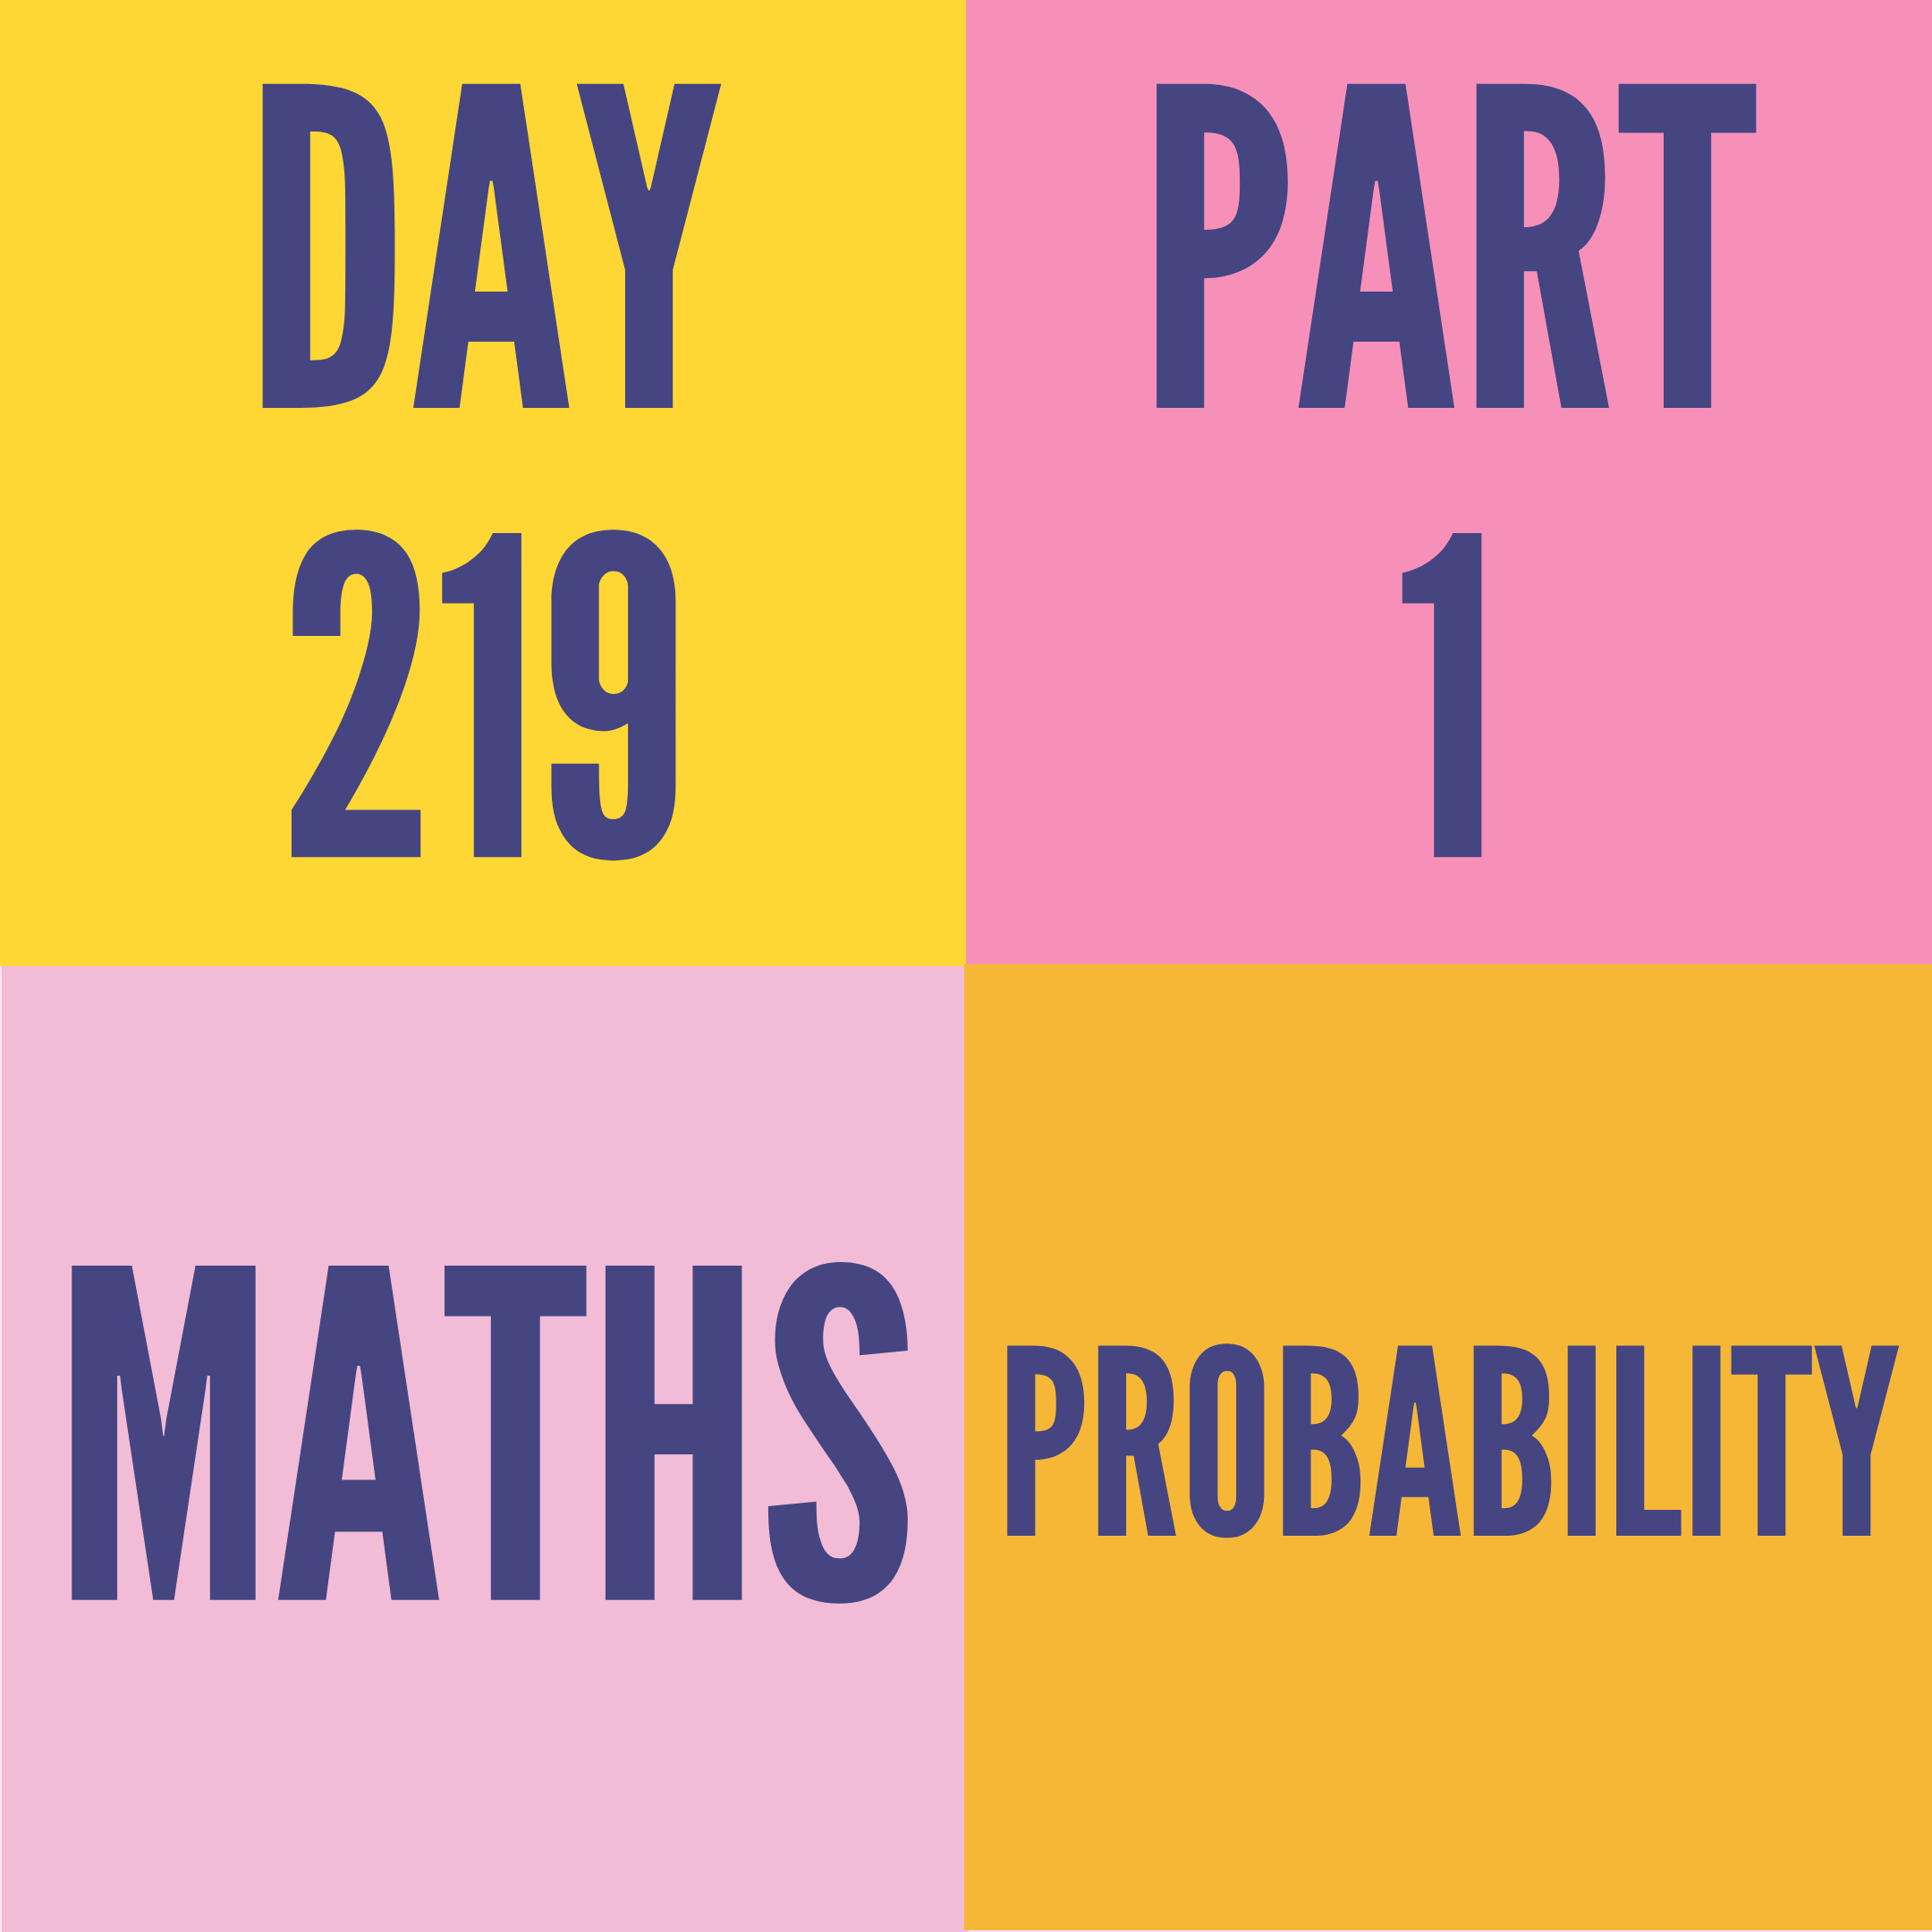 DAY-219 PART-1 PROBABILITY